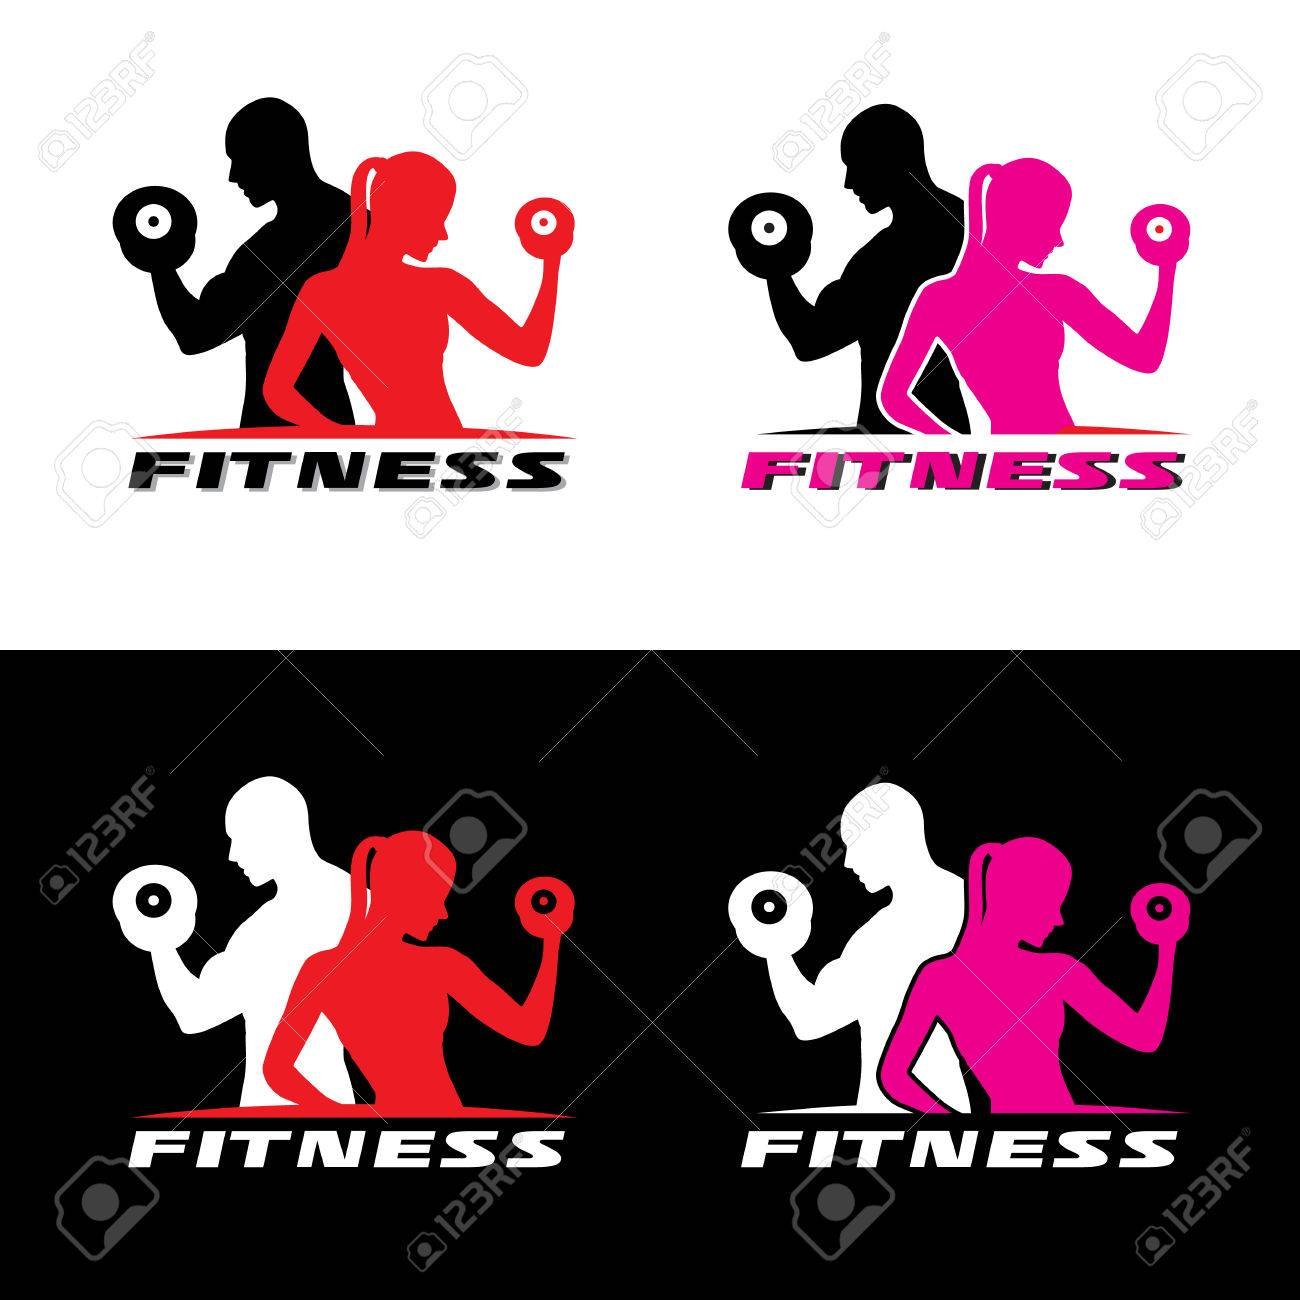 Fitness logo vector - Man and woman holding a dumbbell. - 55659065